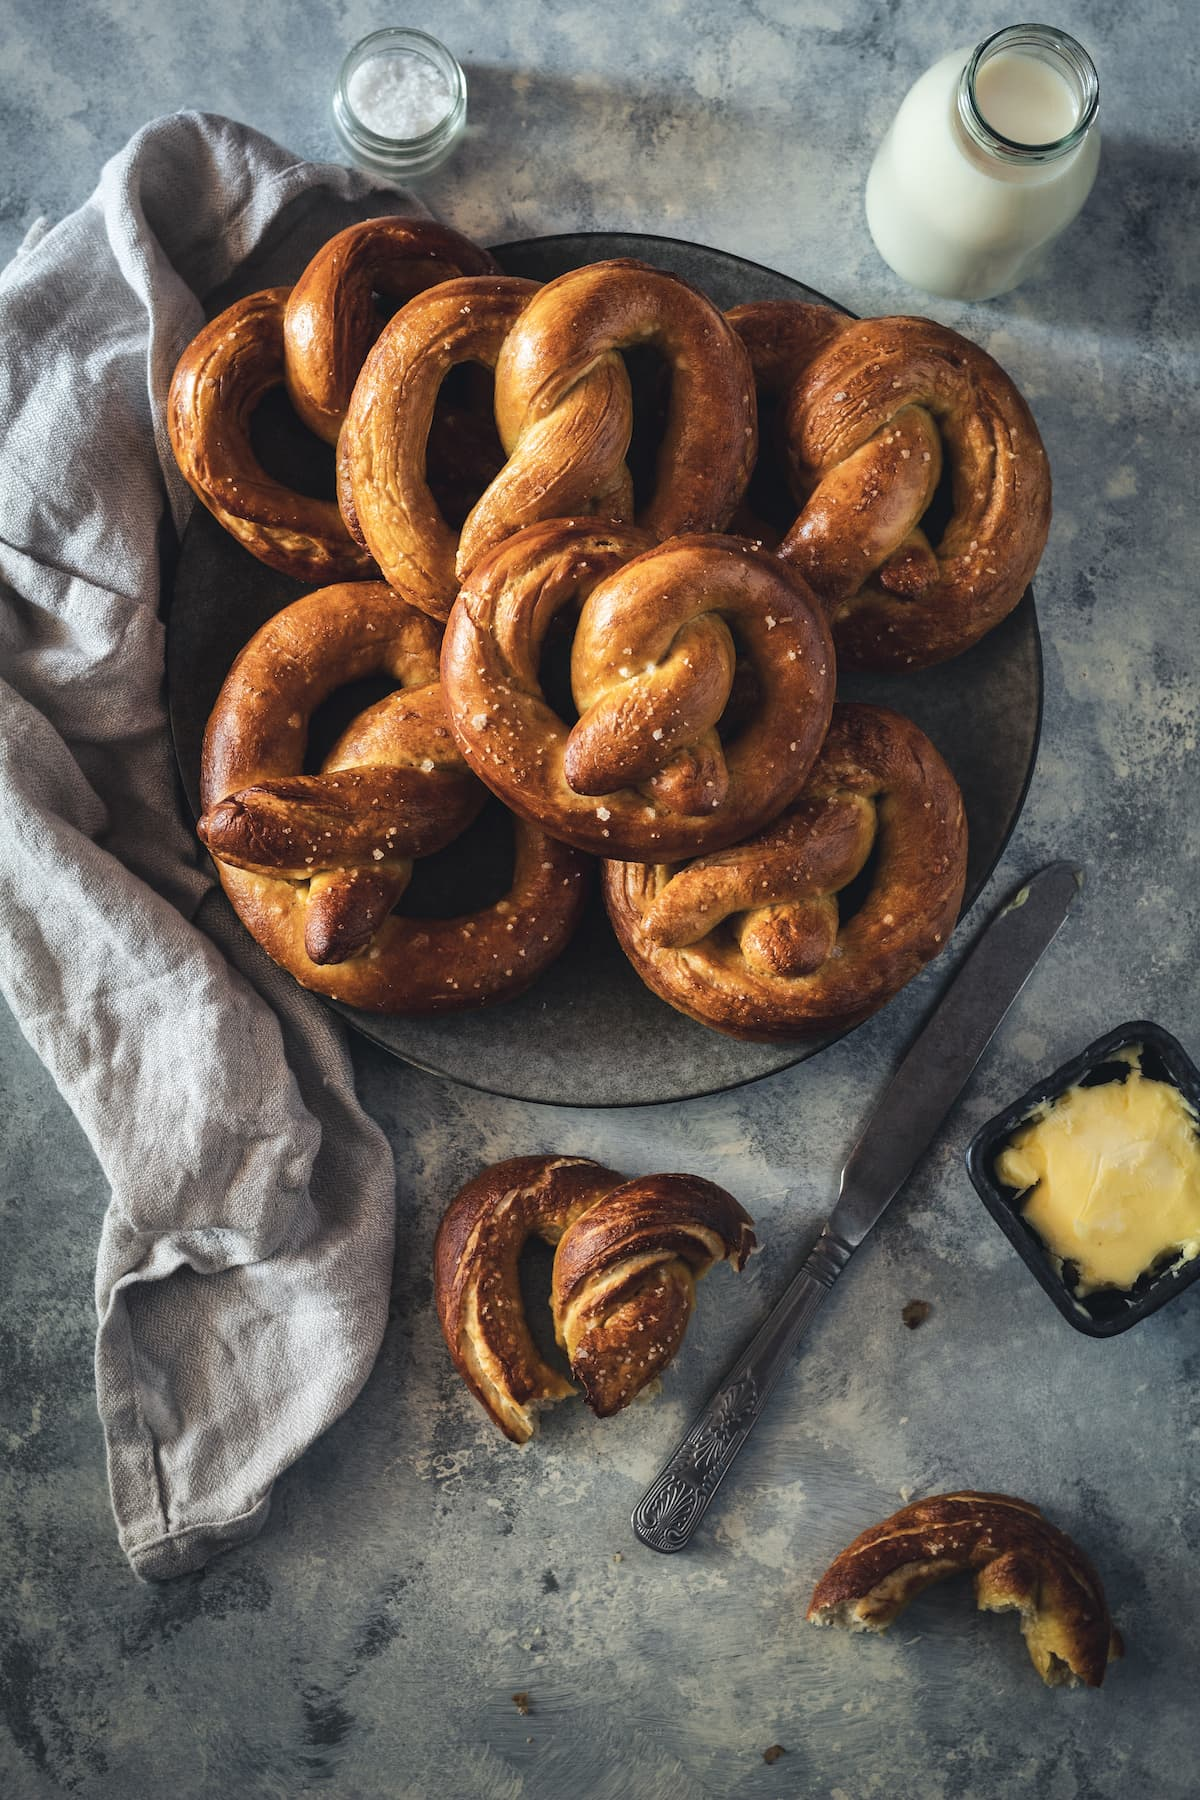 Plate of chewy homemade pretzels.